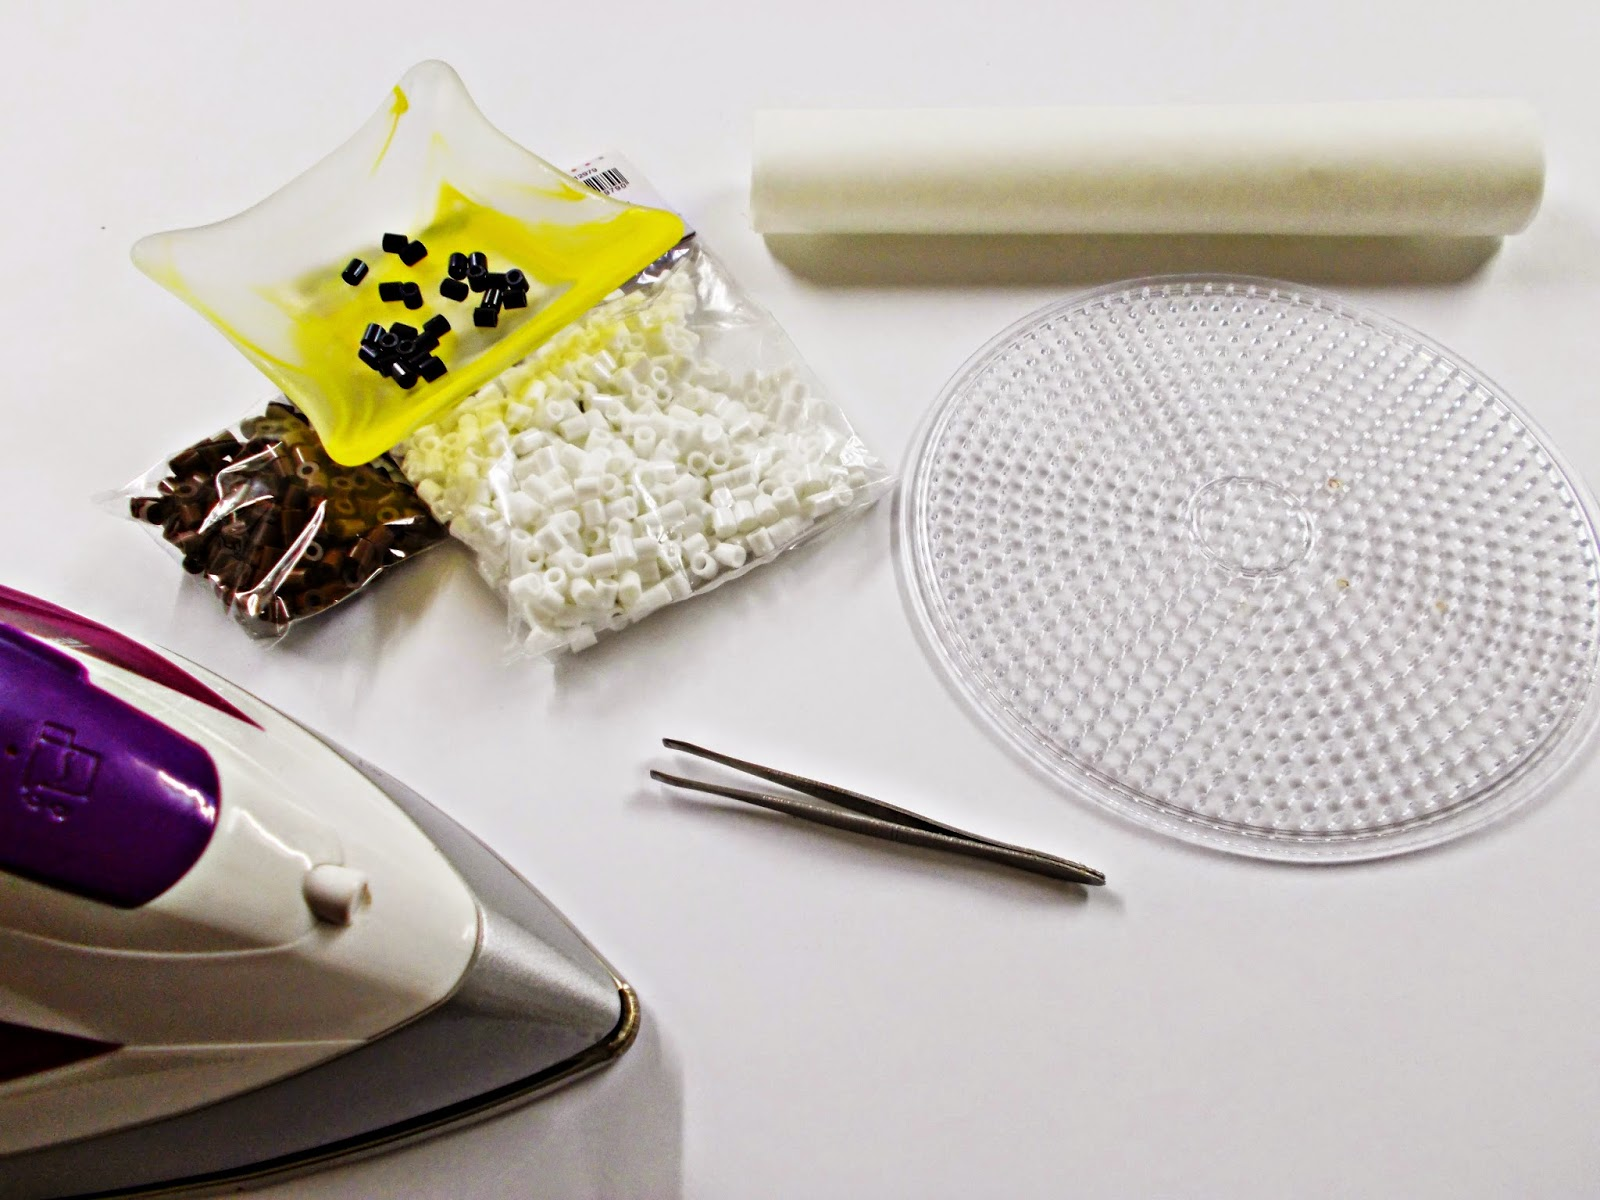 DIY-Hama Beads-ideas-galleta-cookie-guarda auriculares-cables-organizador-2